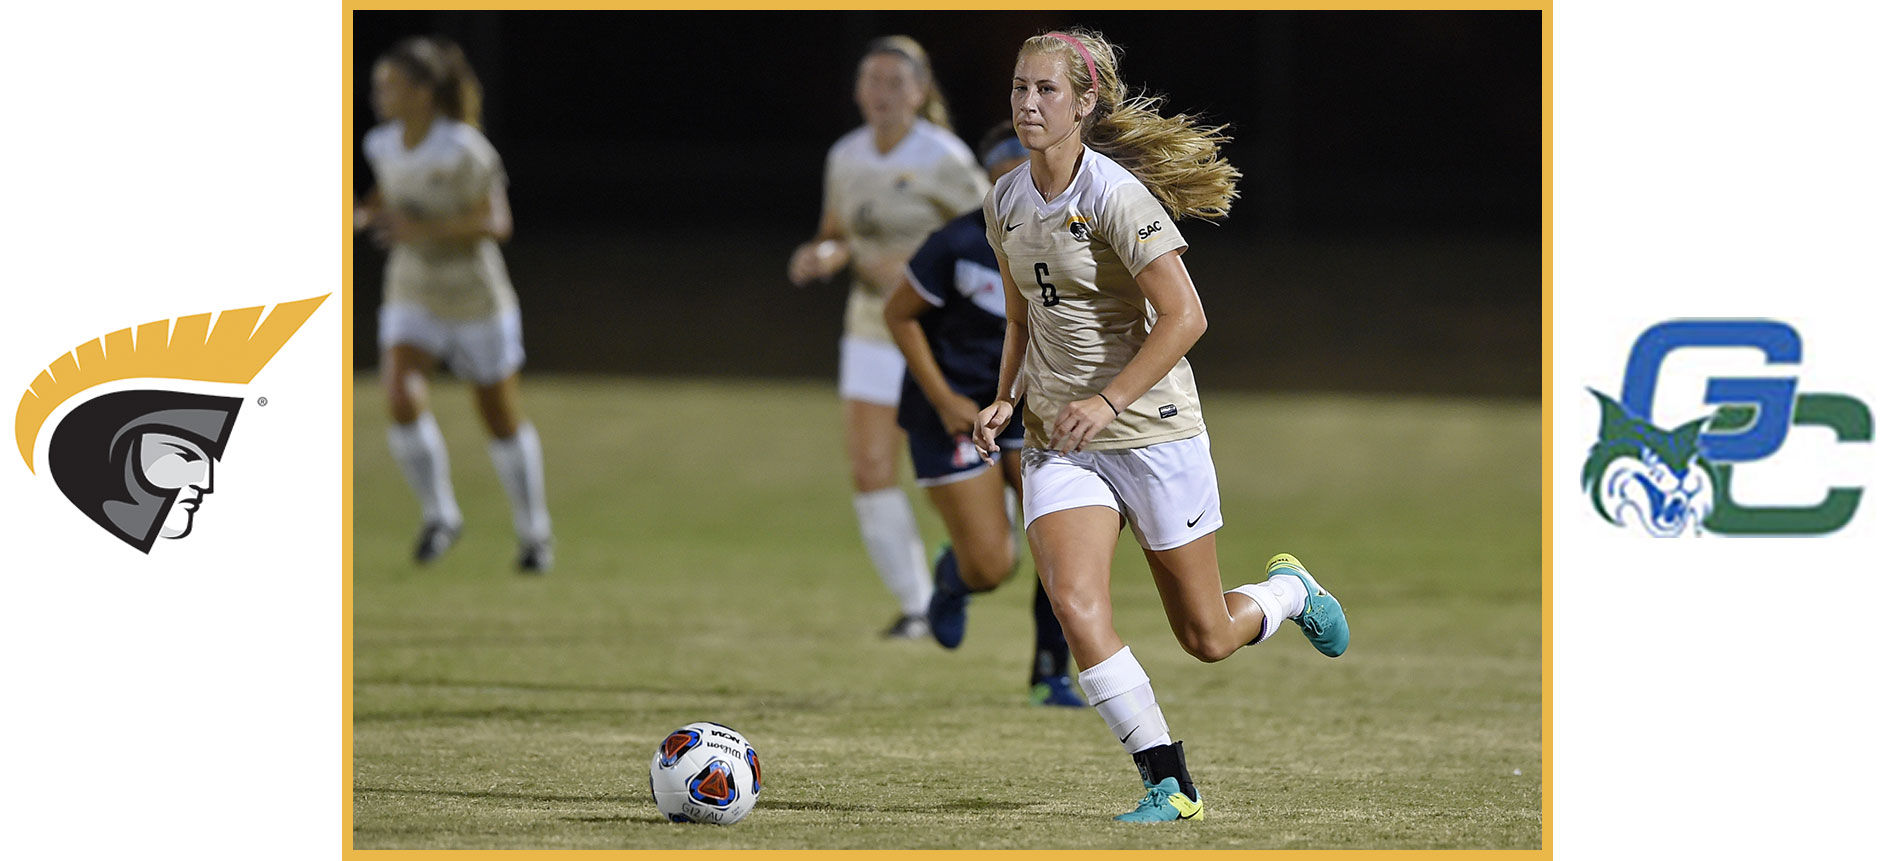 Women's Soccer Welcomes Georgia College to Open 2018 Campaign